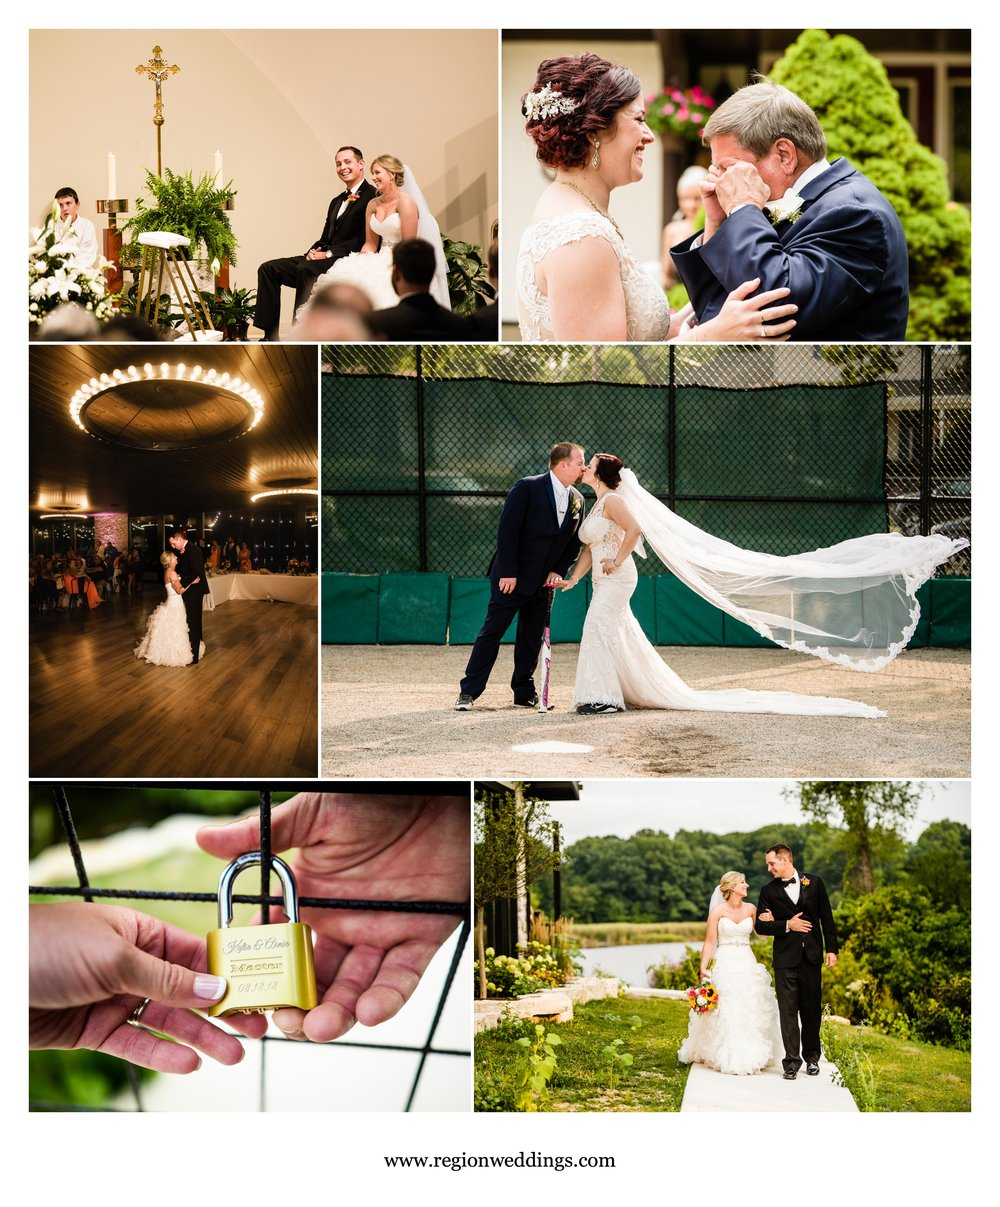 August weddings at St. Mary's Catholic Church, St. Paul's Catholic Church and Allure on The Lake.